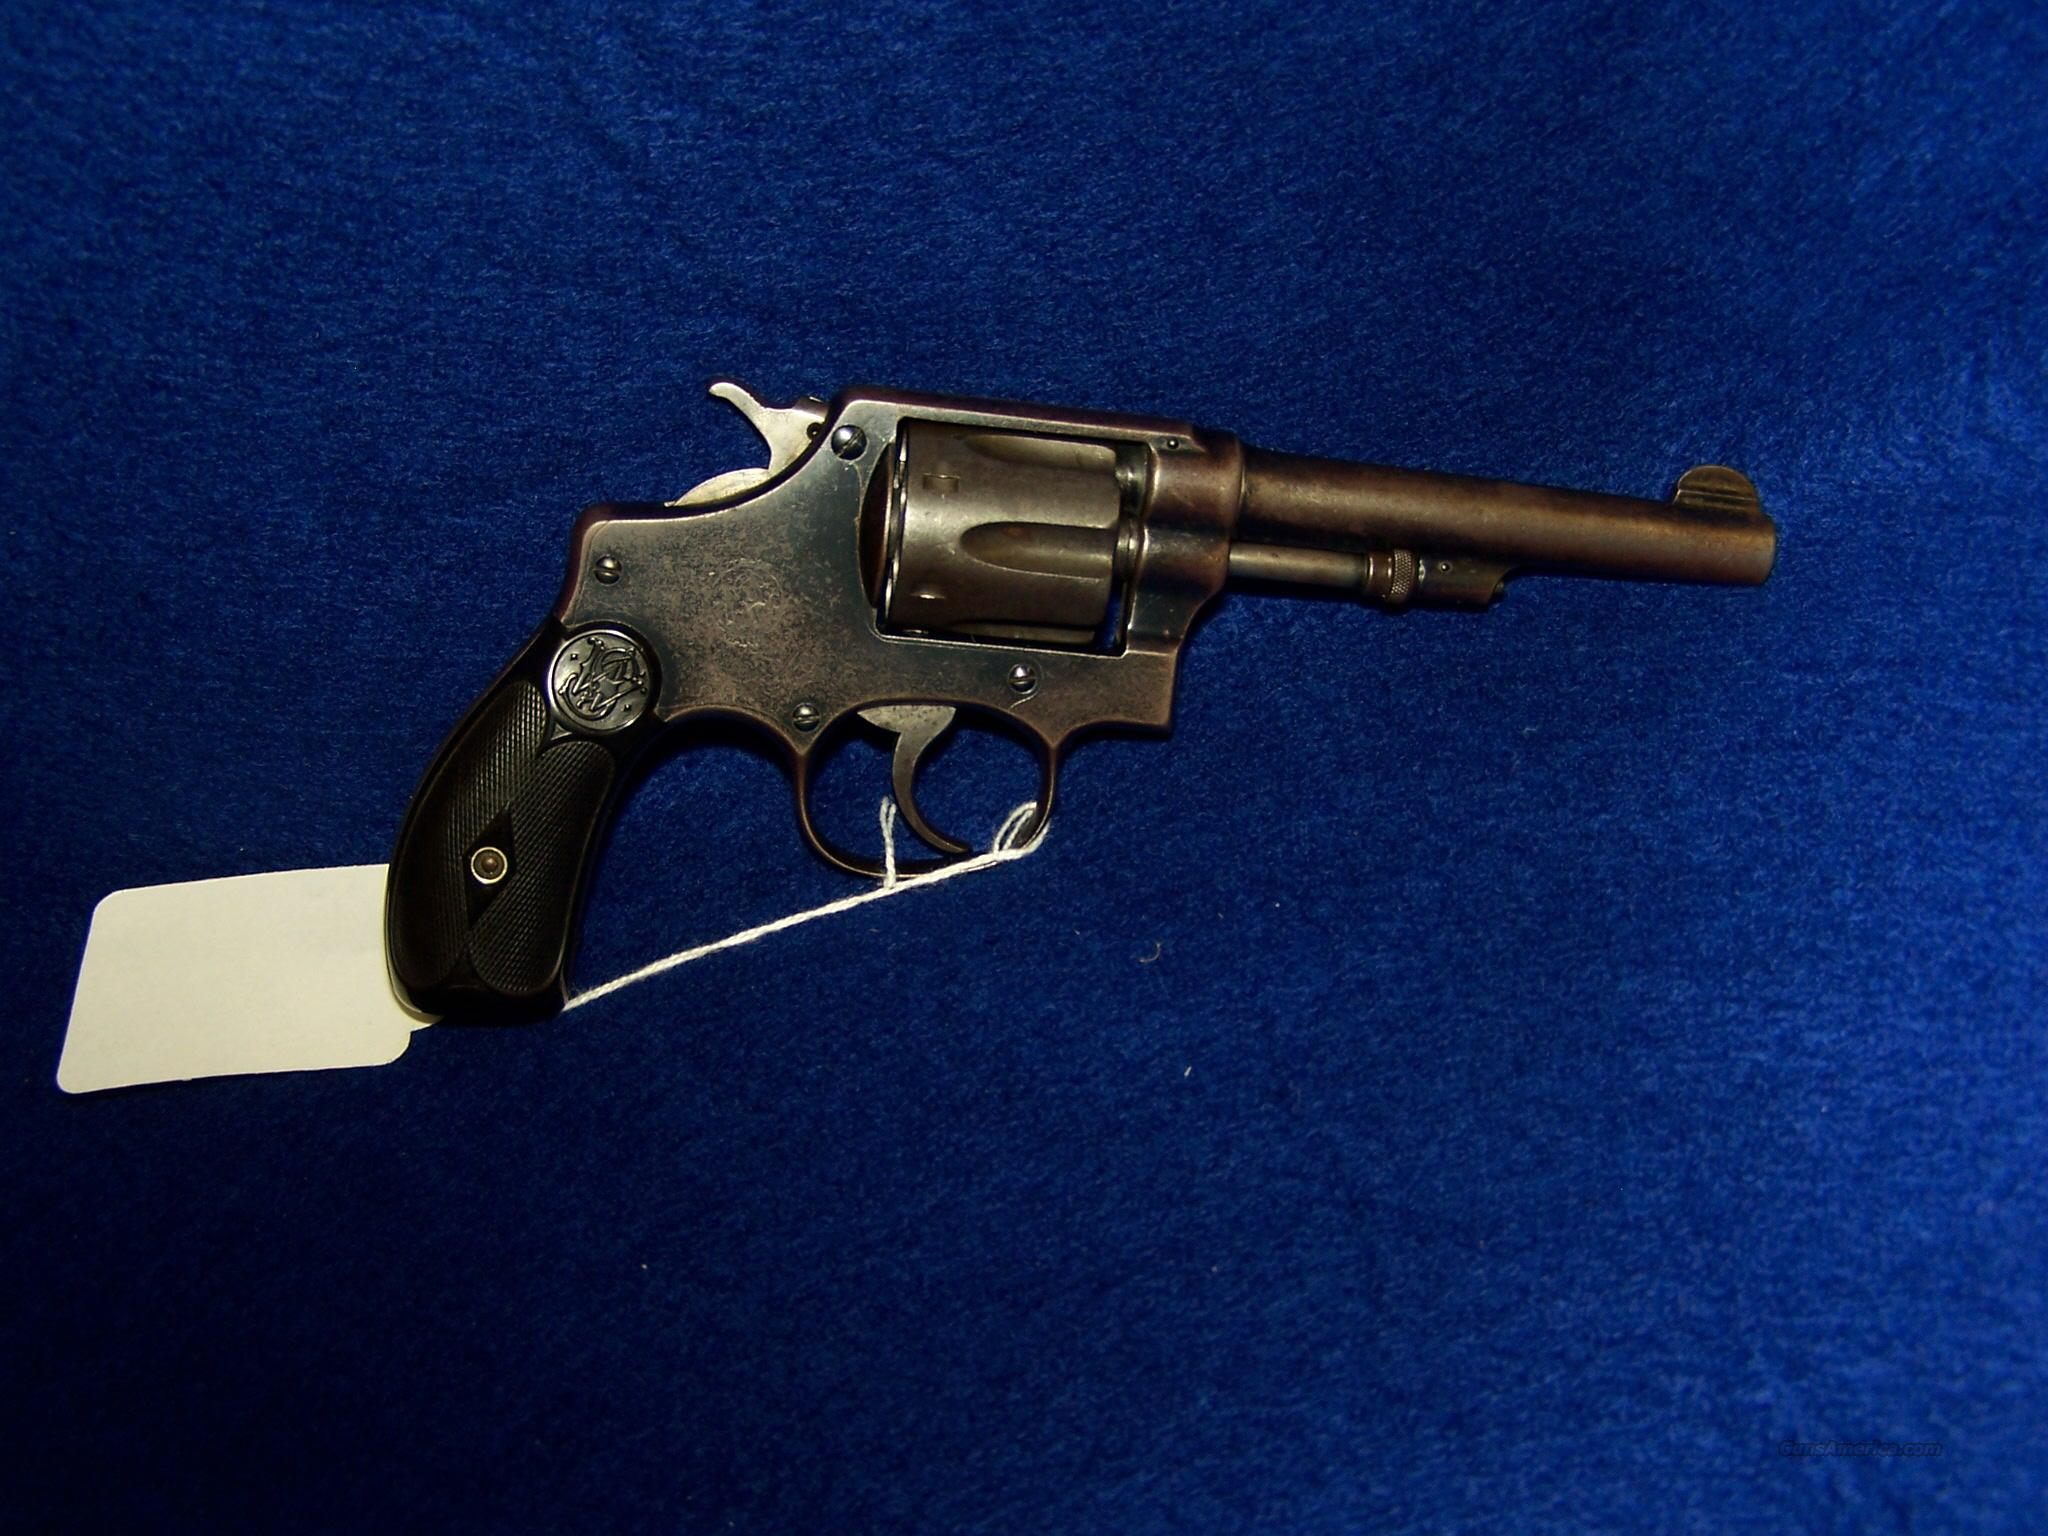 32 HAND EIECT 32SW LONG  Guns > Pistols > Smith & Wesson Revolvers > Pre-1945